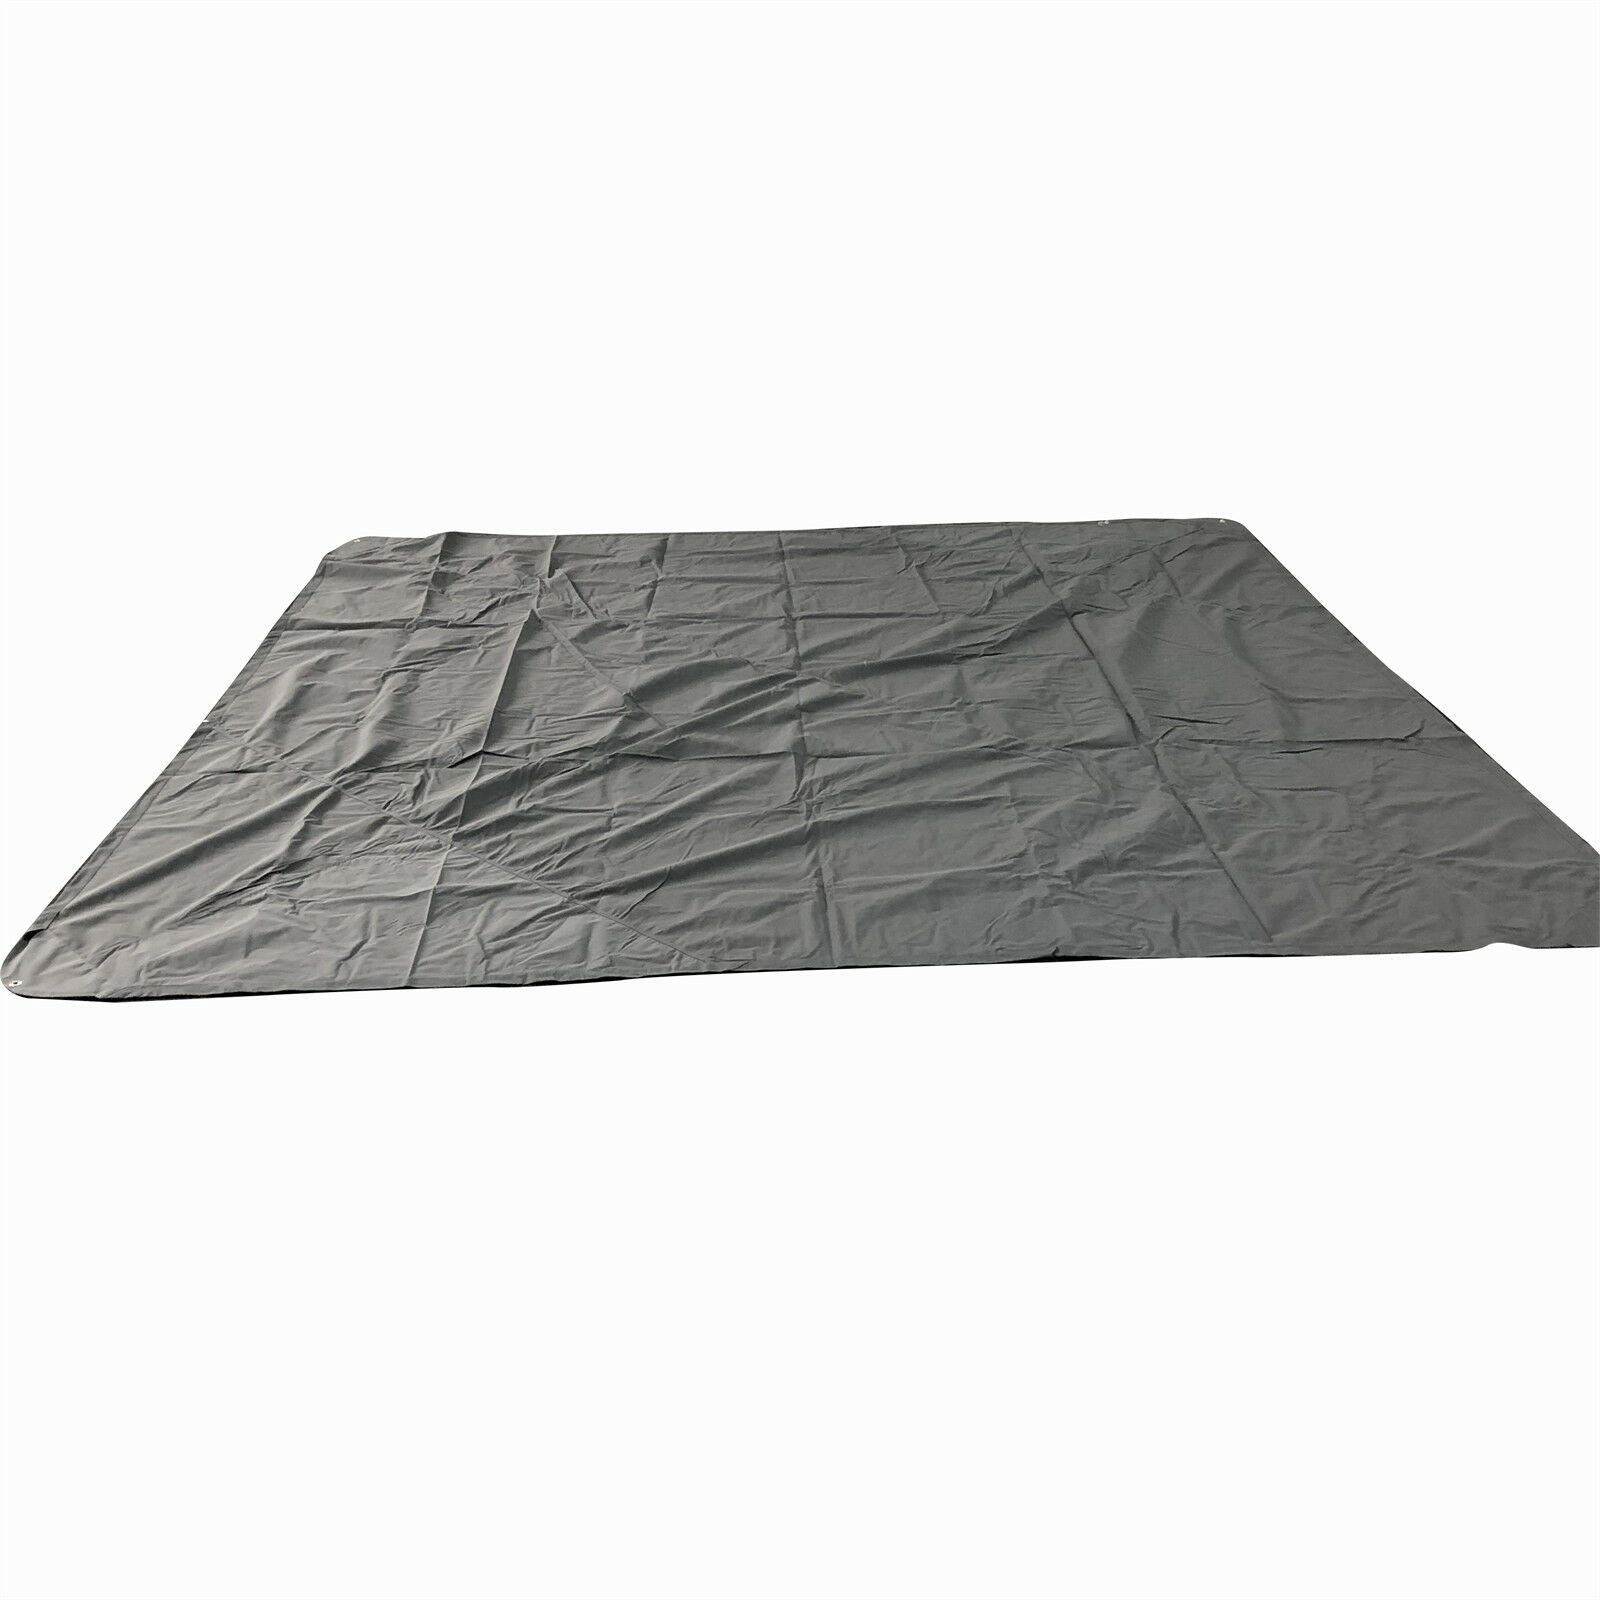 Coolaroo REPLACEMENT CANOPY FOR BUTTERFLY GAZEBO 4x4m Charcoal Australian Brand